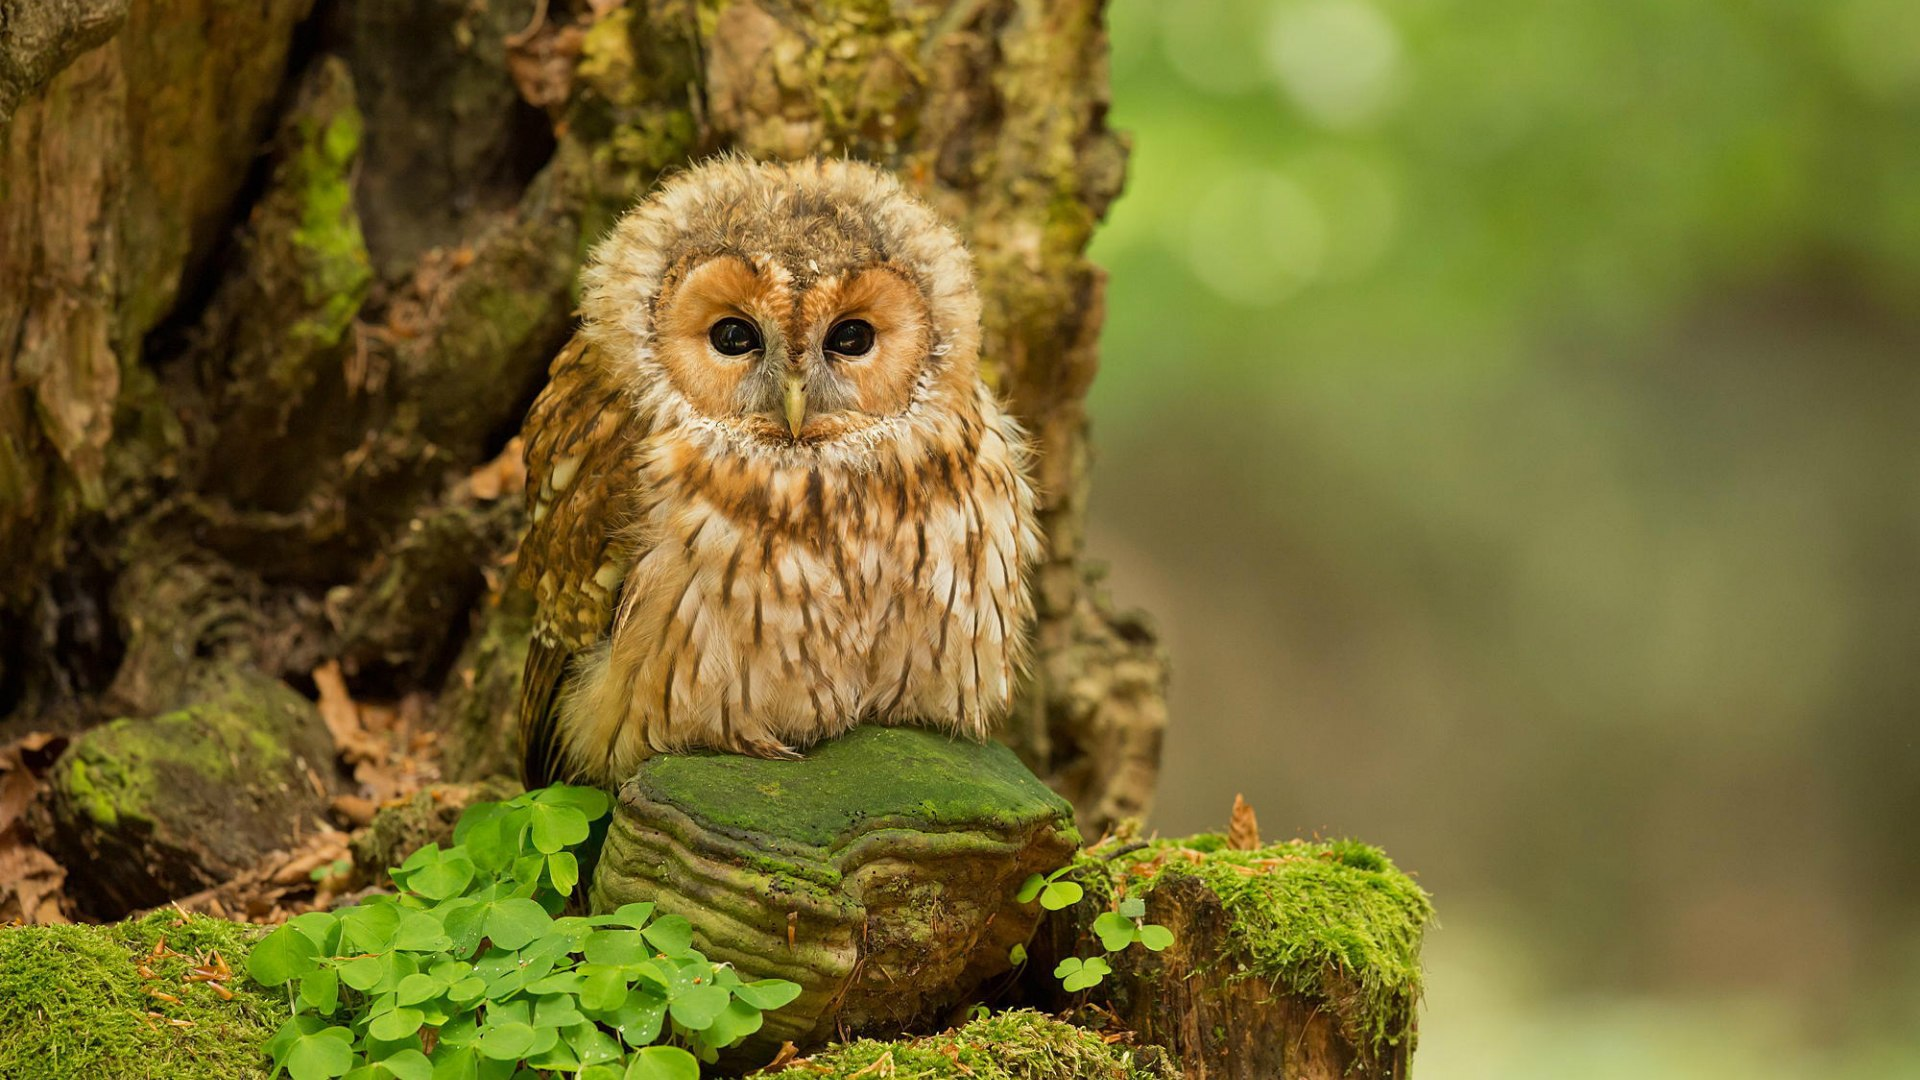 Cute Owl Image Free Download.